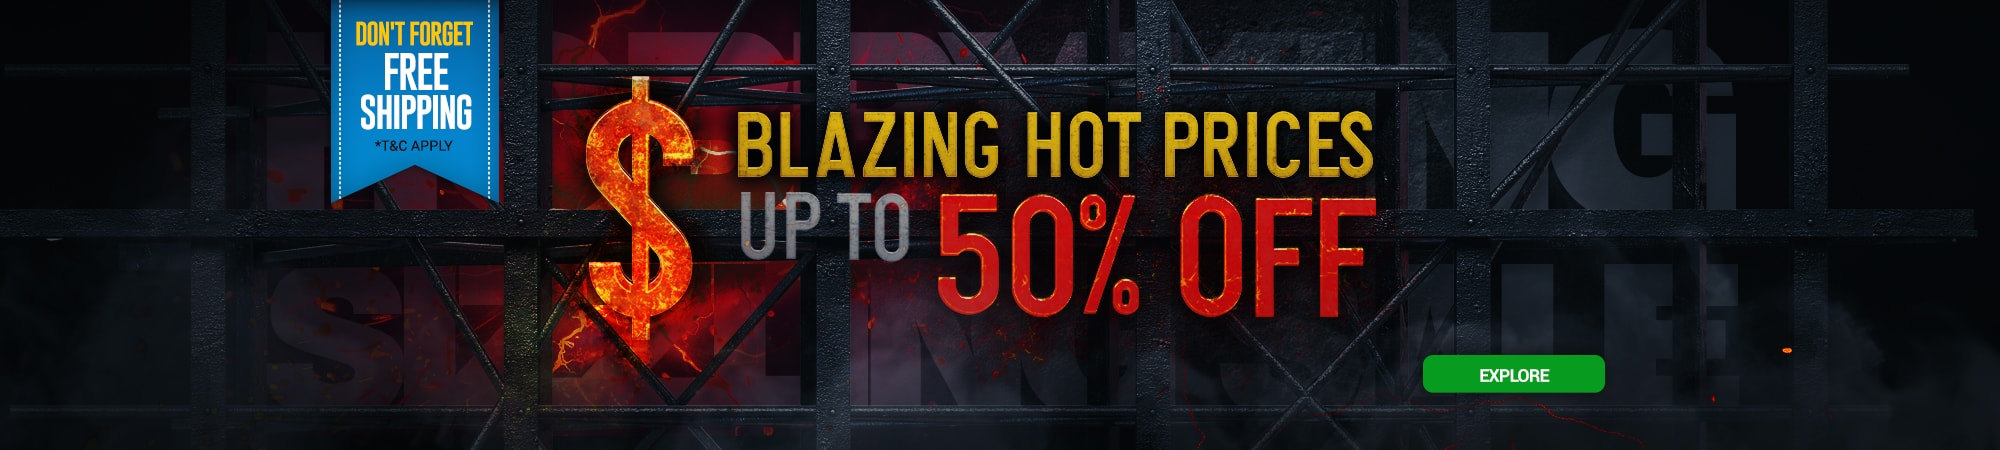 Blazing Hot Prices